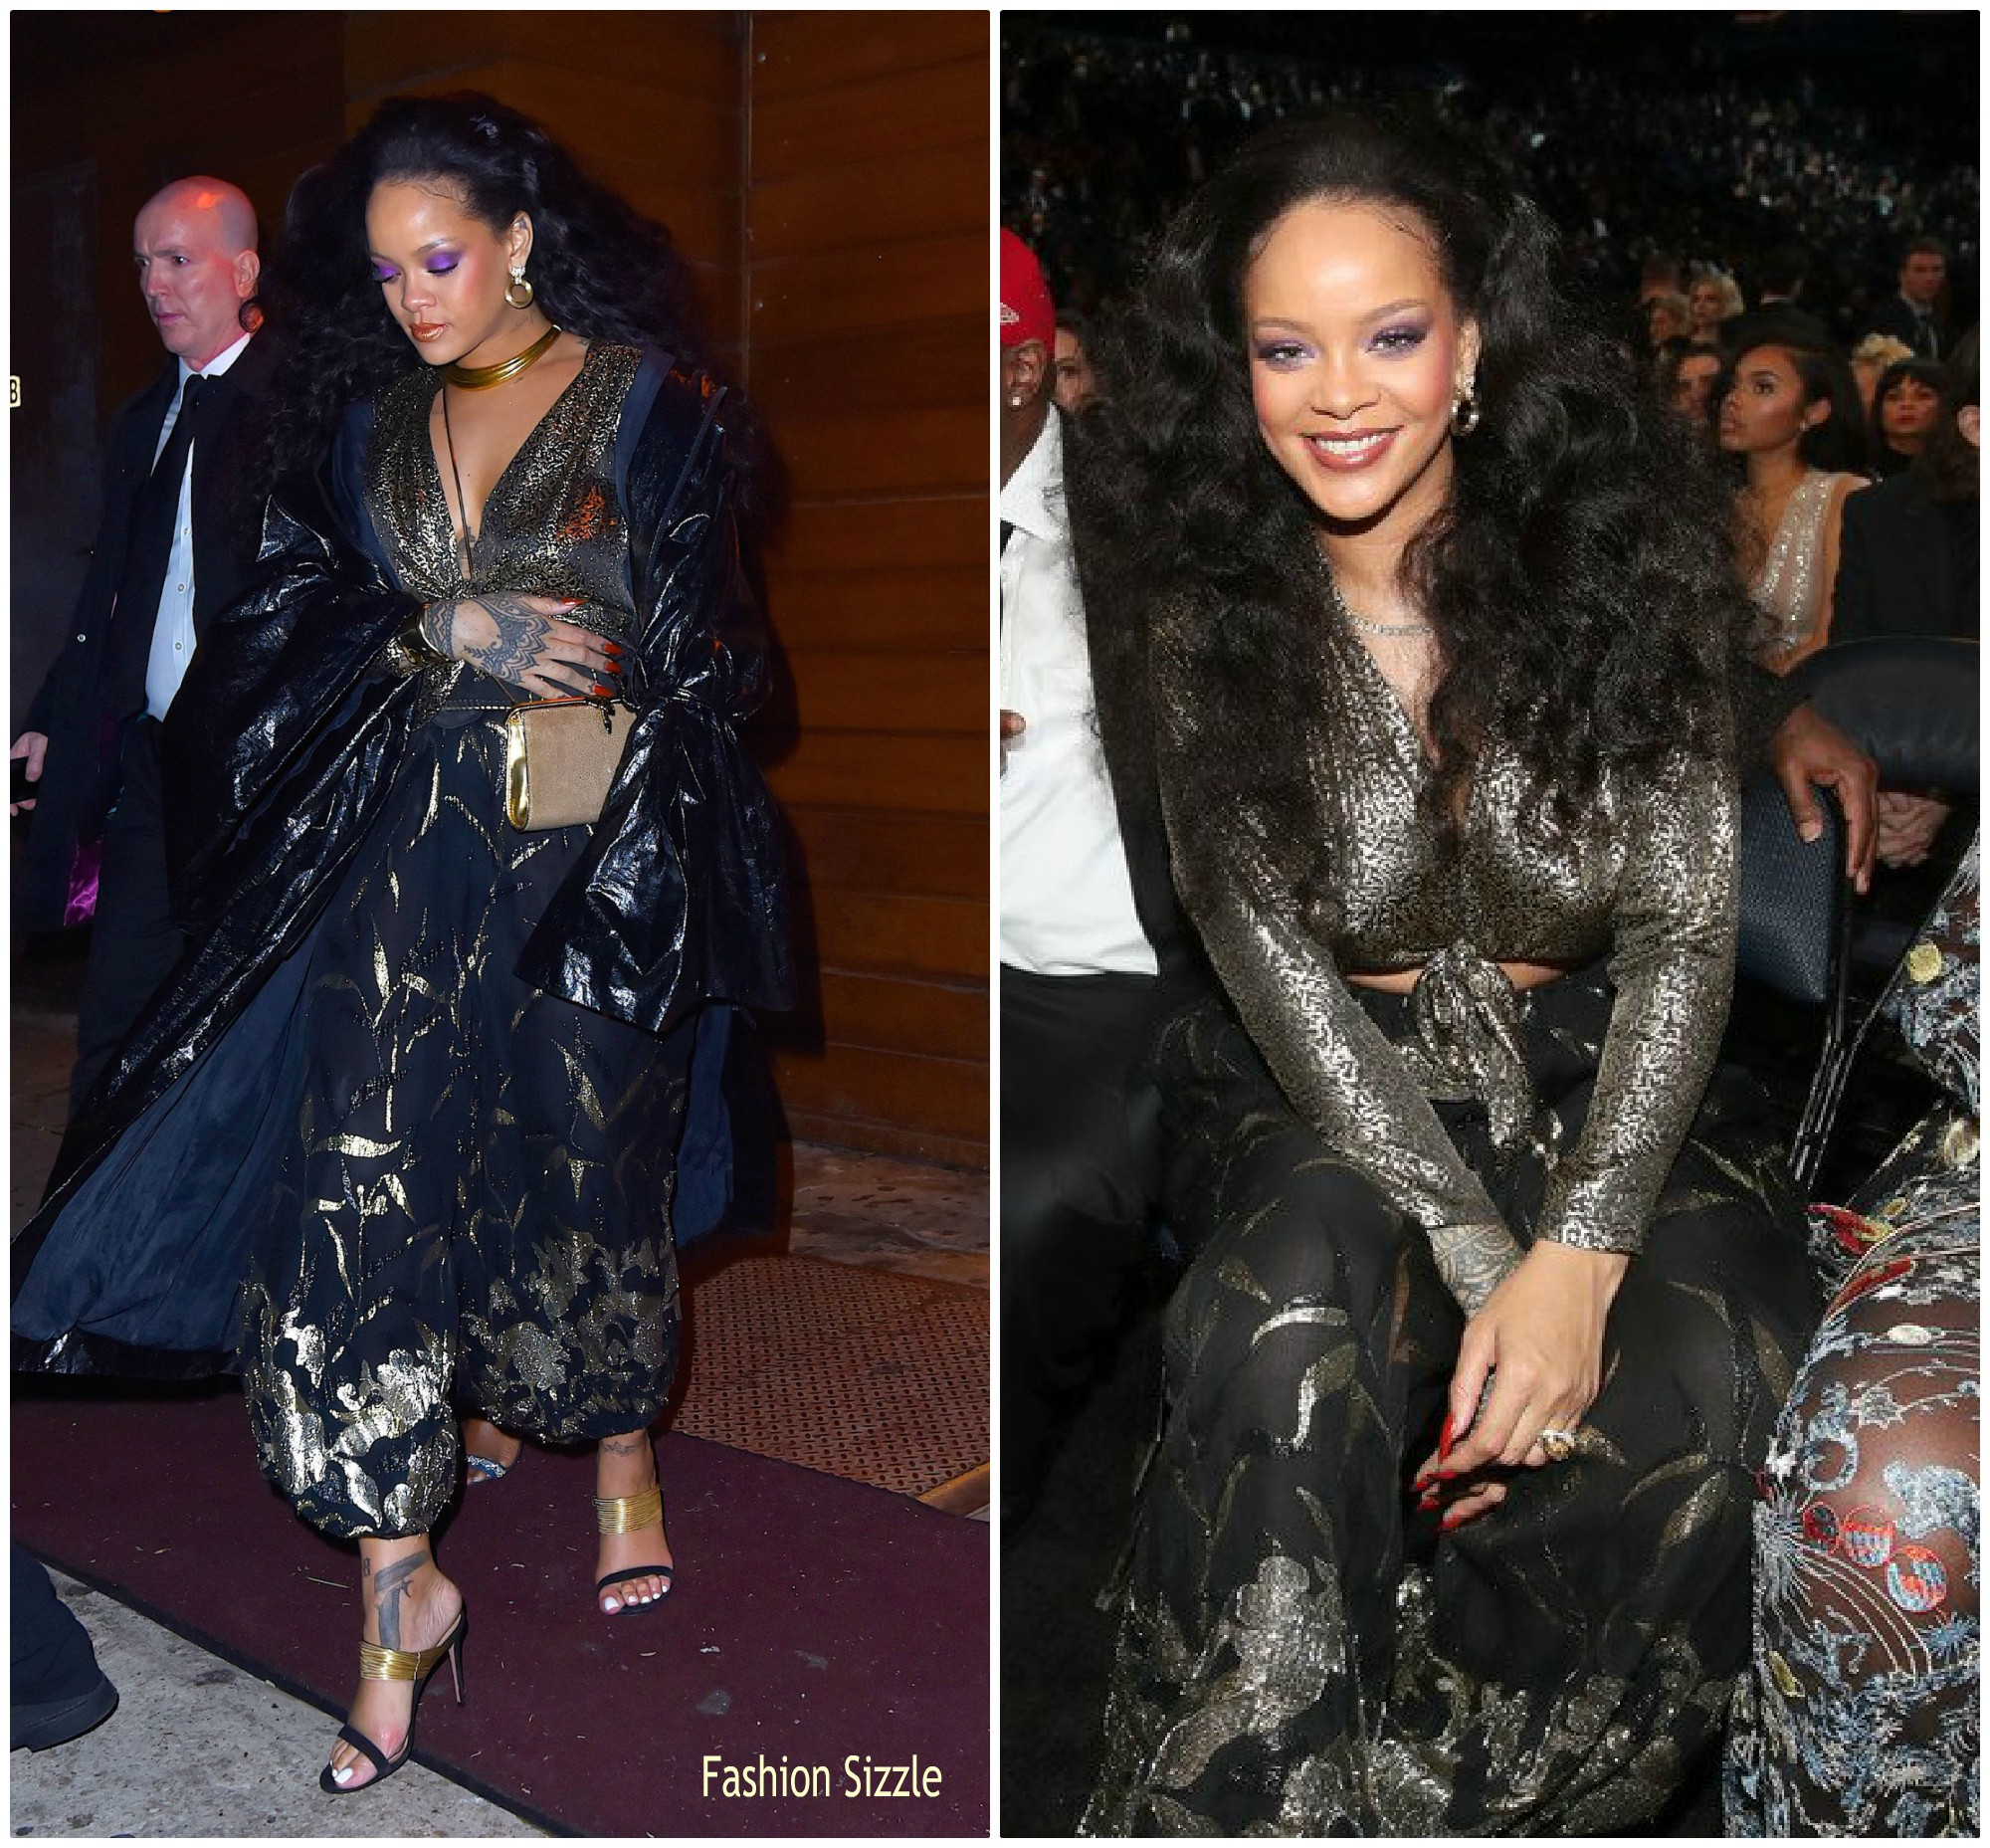 rihanna-in-yves-saint-laurent-grammy-2018-celebration-at-1-oak-nightclub